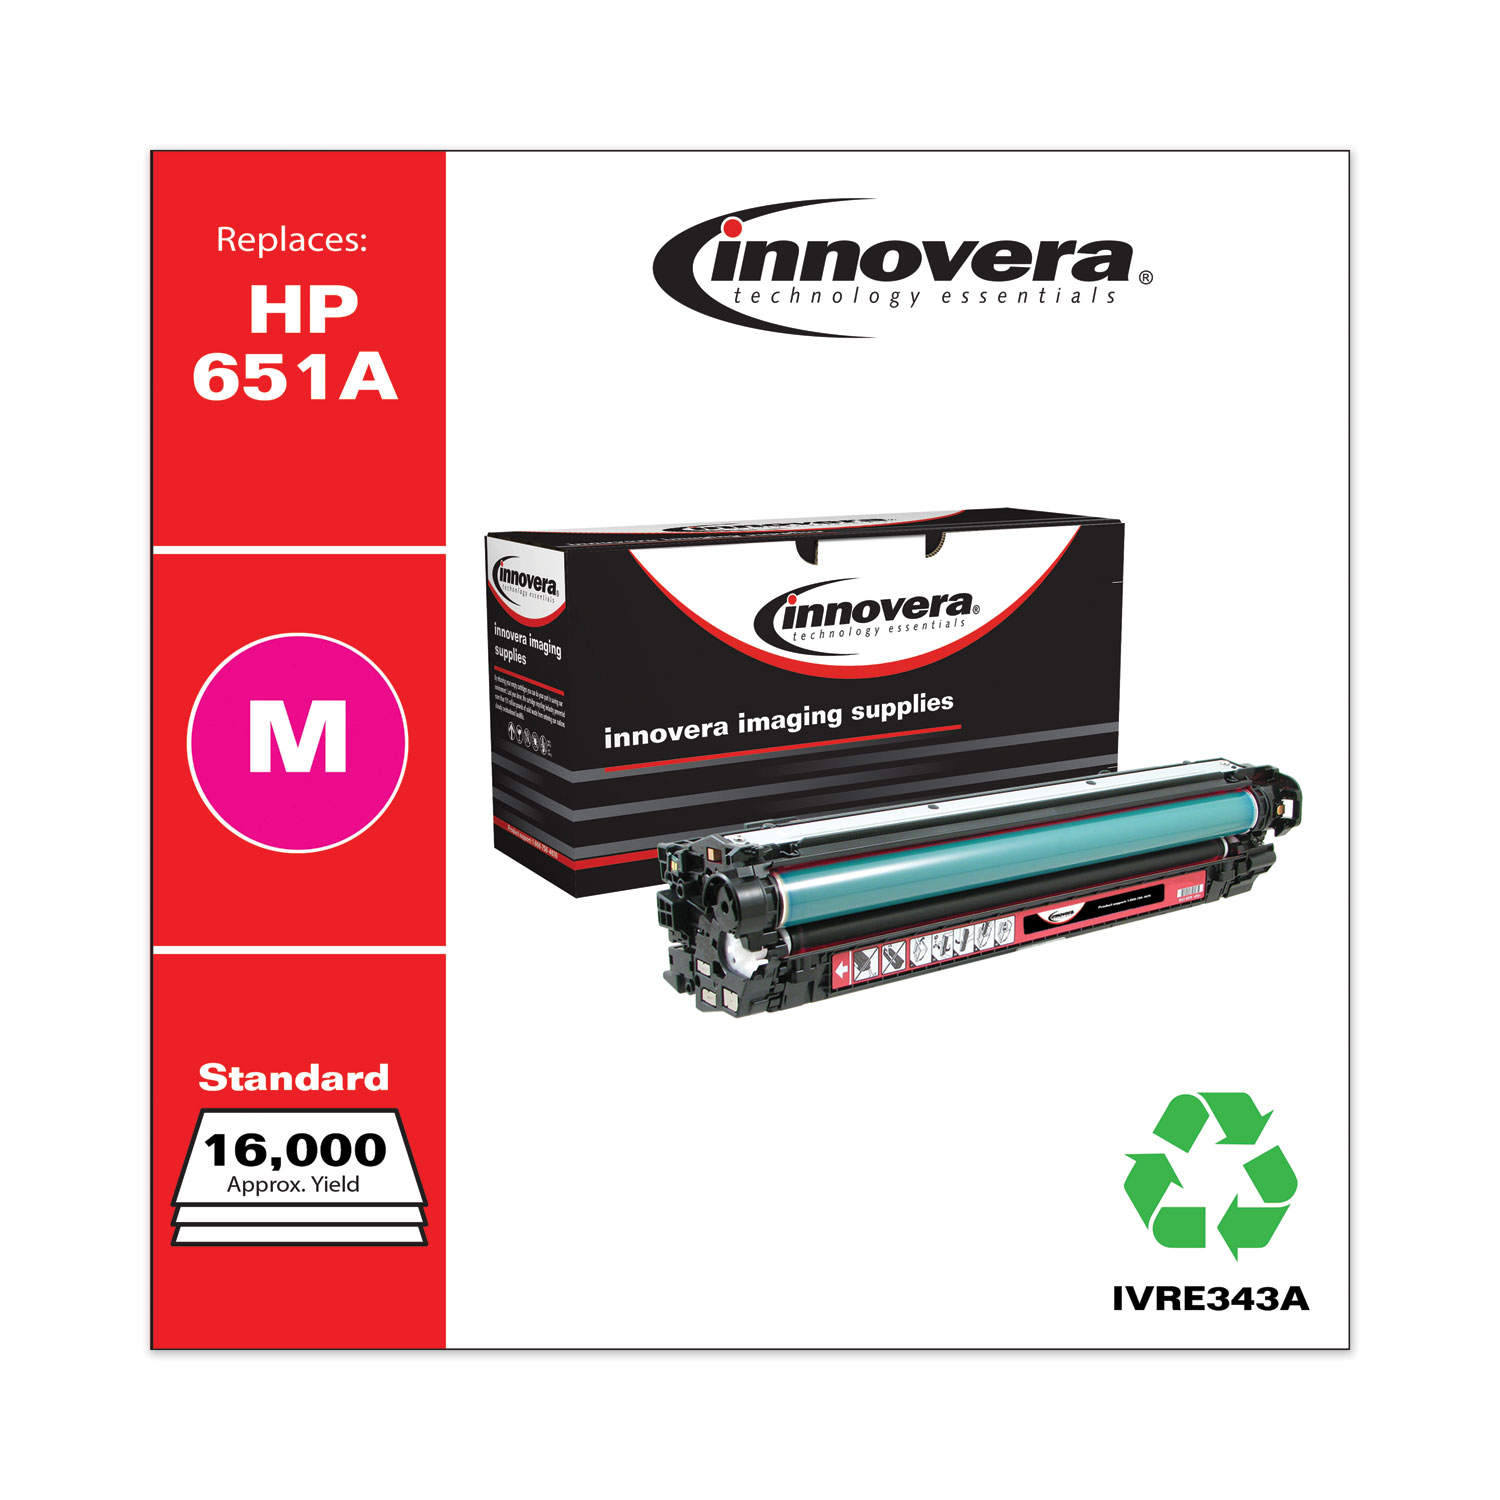 Remanufactured Magenta Toner, Replacement for HP 651A (CE343A), 13,500 Page-Yield IVRE343A